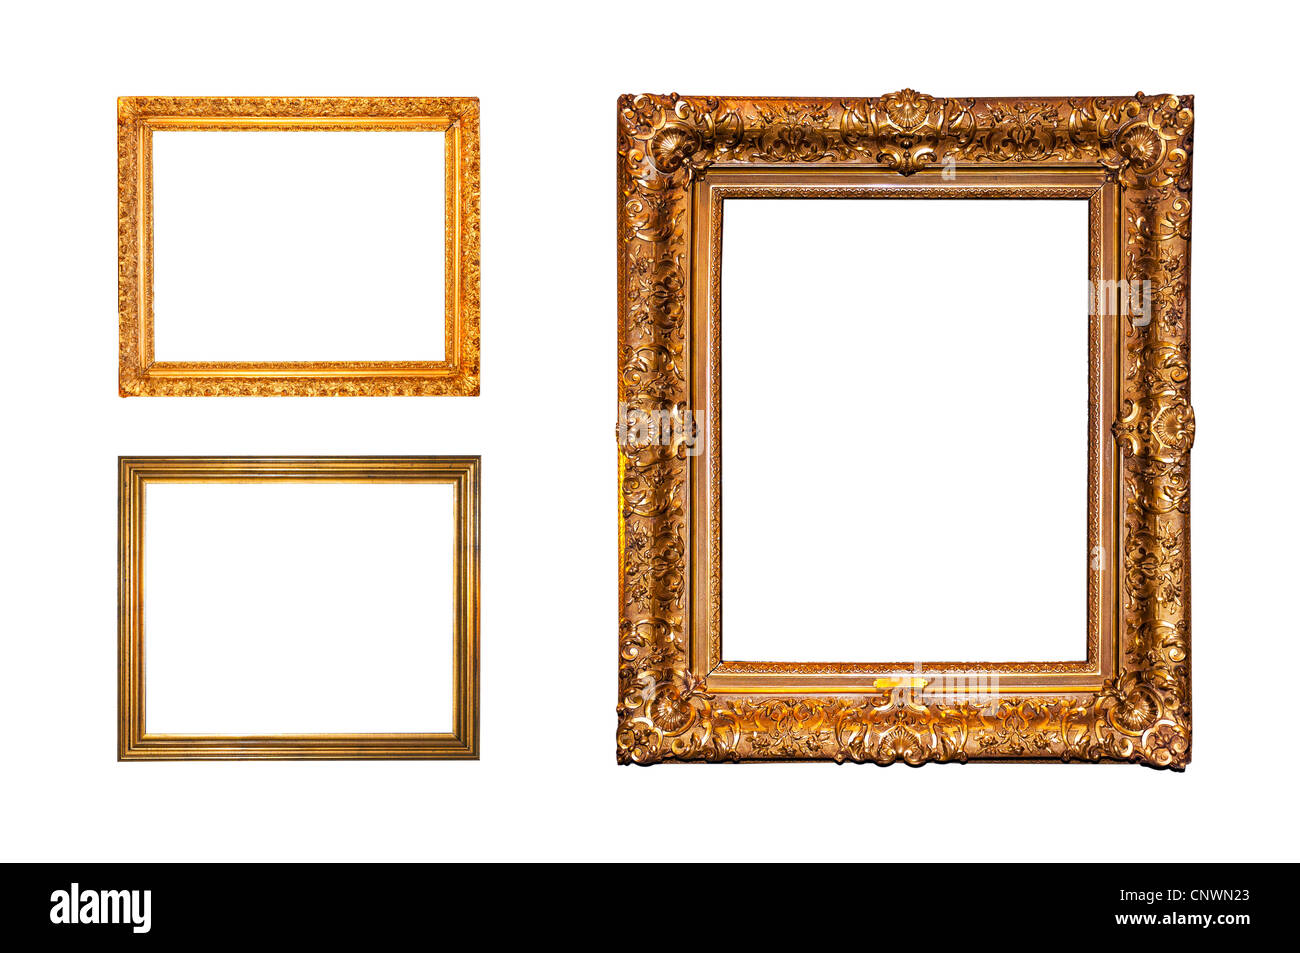 Old ornate golden frames isolated on a white background Stock Photo ...